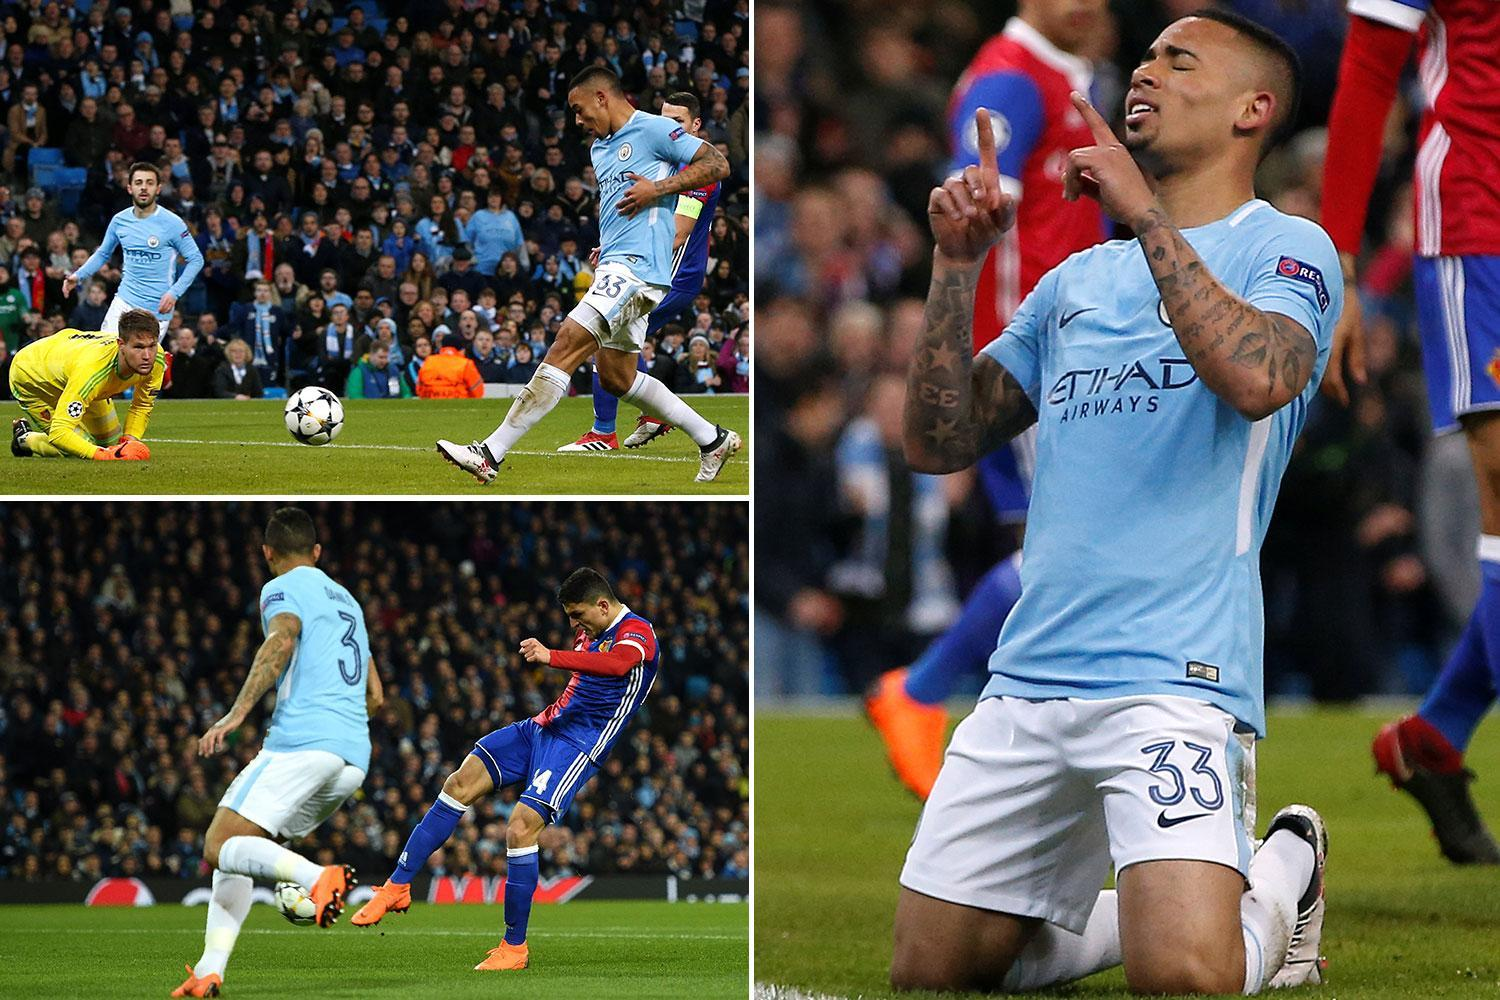 Man City 1 Basel 2 LIVE SCORE: Lang and Elyounoussi score for visitors after Gabriel Jesus first goal since November – latest action from Champions League